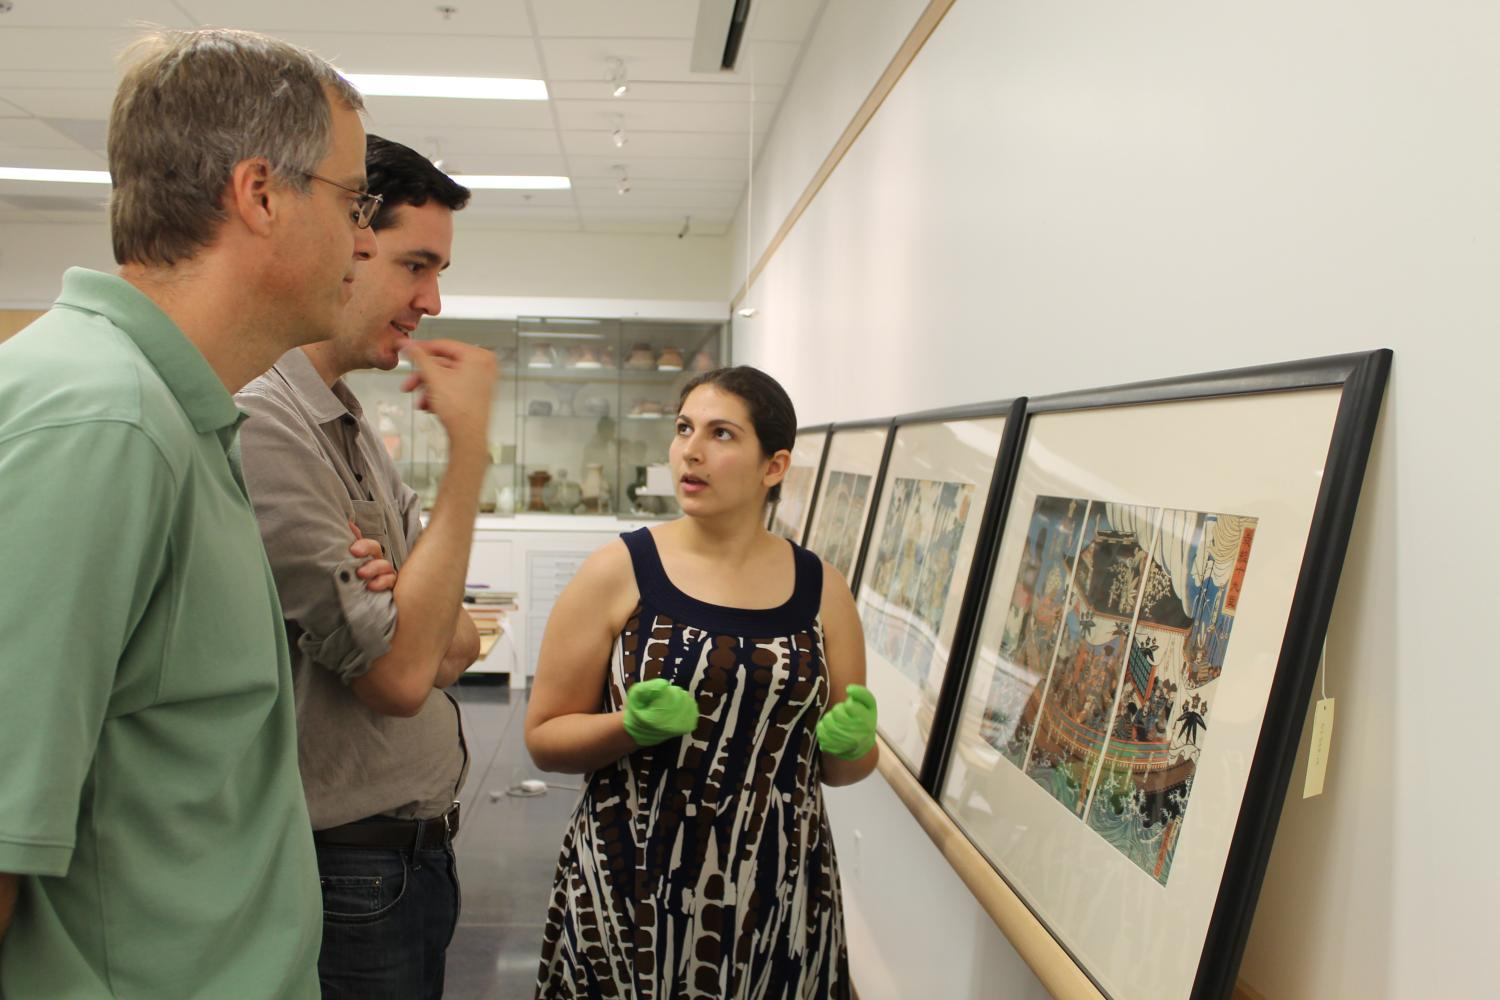 Two male professors converse with a female student while looking at a framed Japanese print.